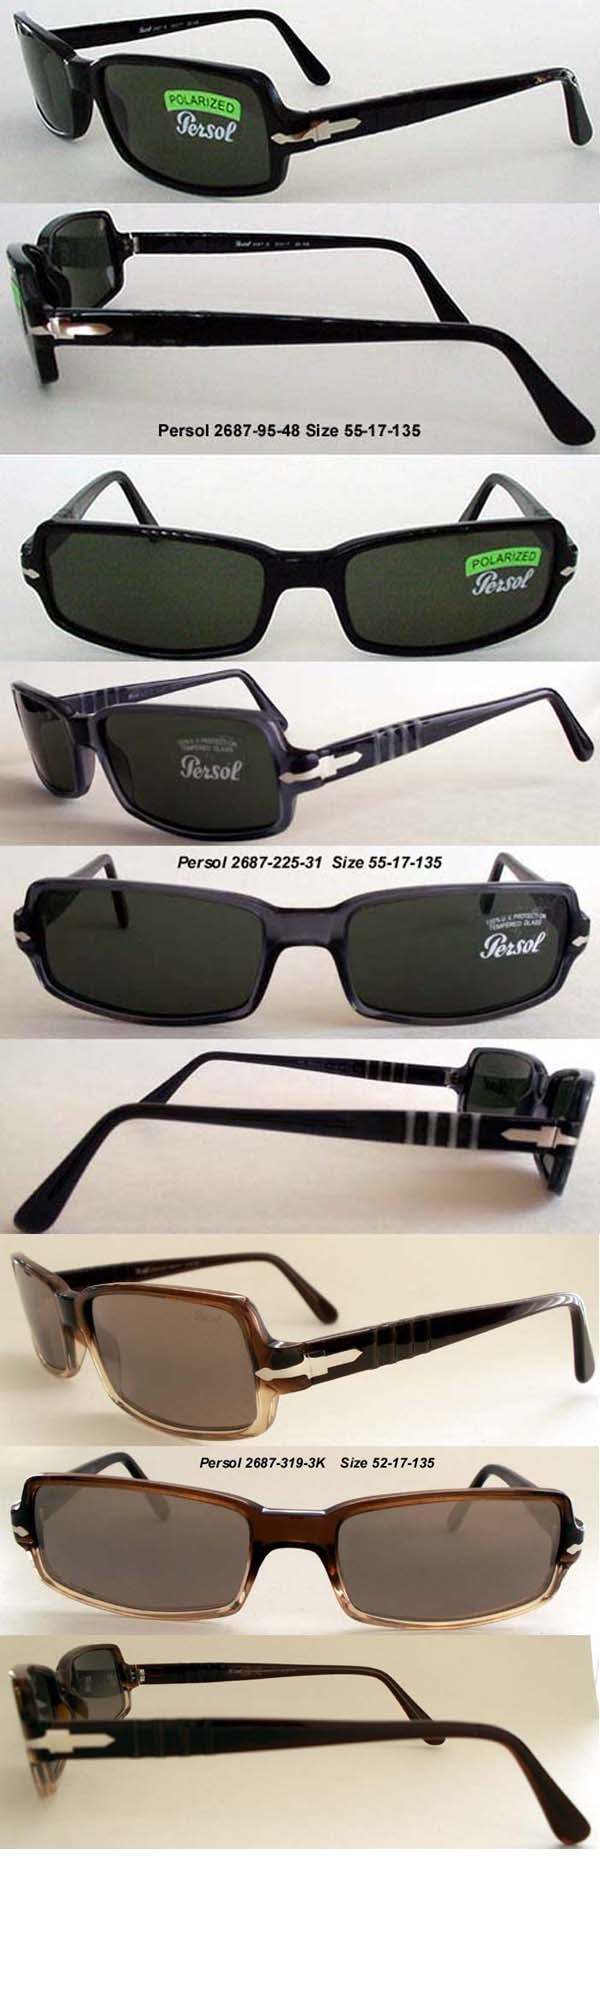 2687 Persol